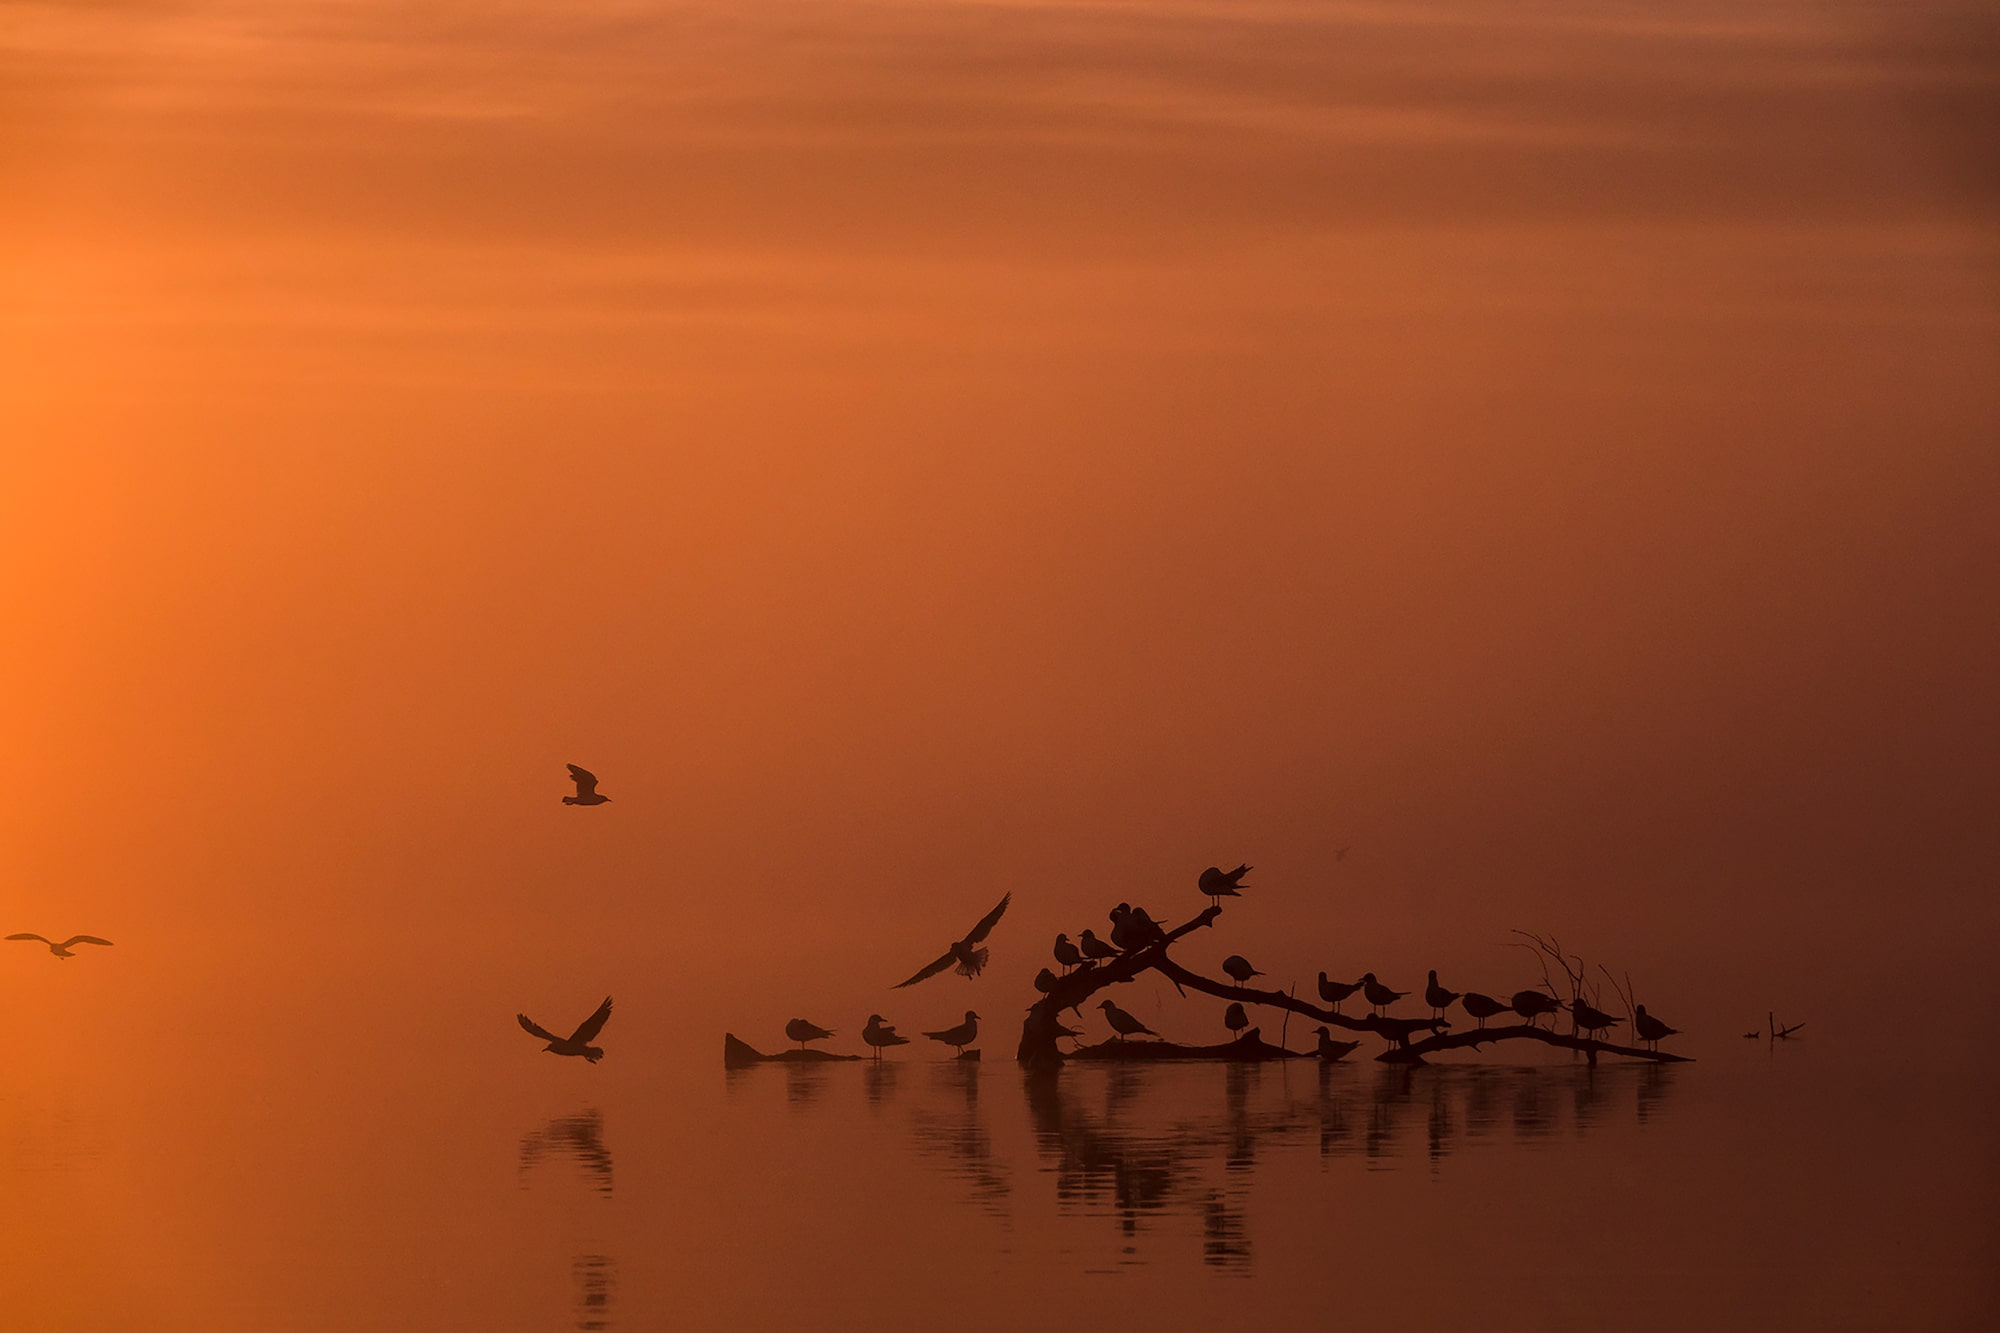 kaisa lappalainen sony rx10IV a flock of birds rests on a log in the water at dawn